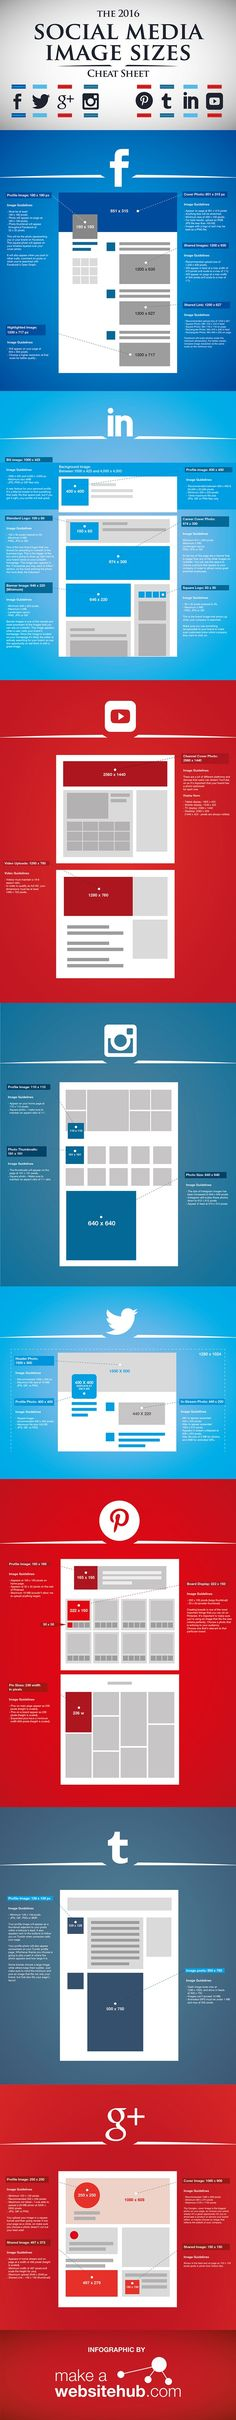 The 2016 Social Media Image Size Cheat Sheet #Infographic